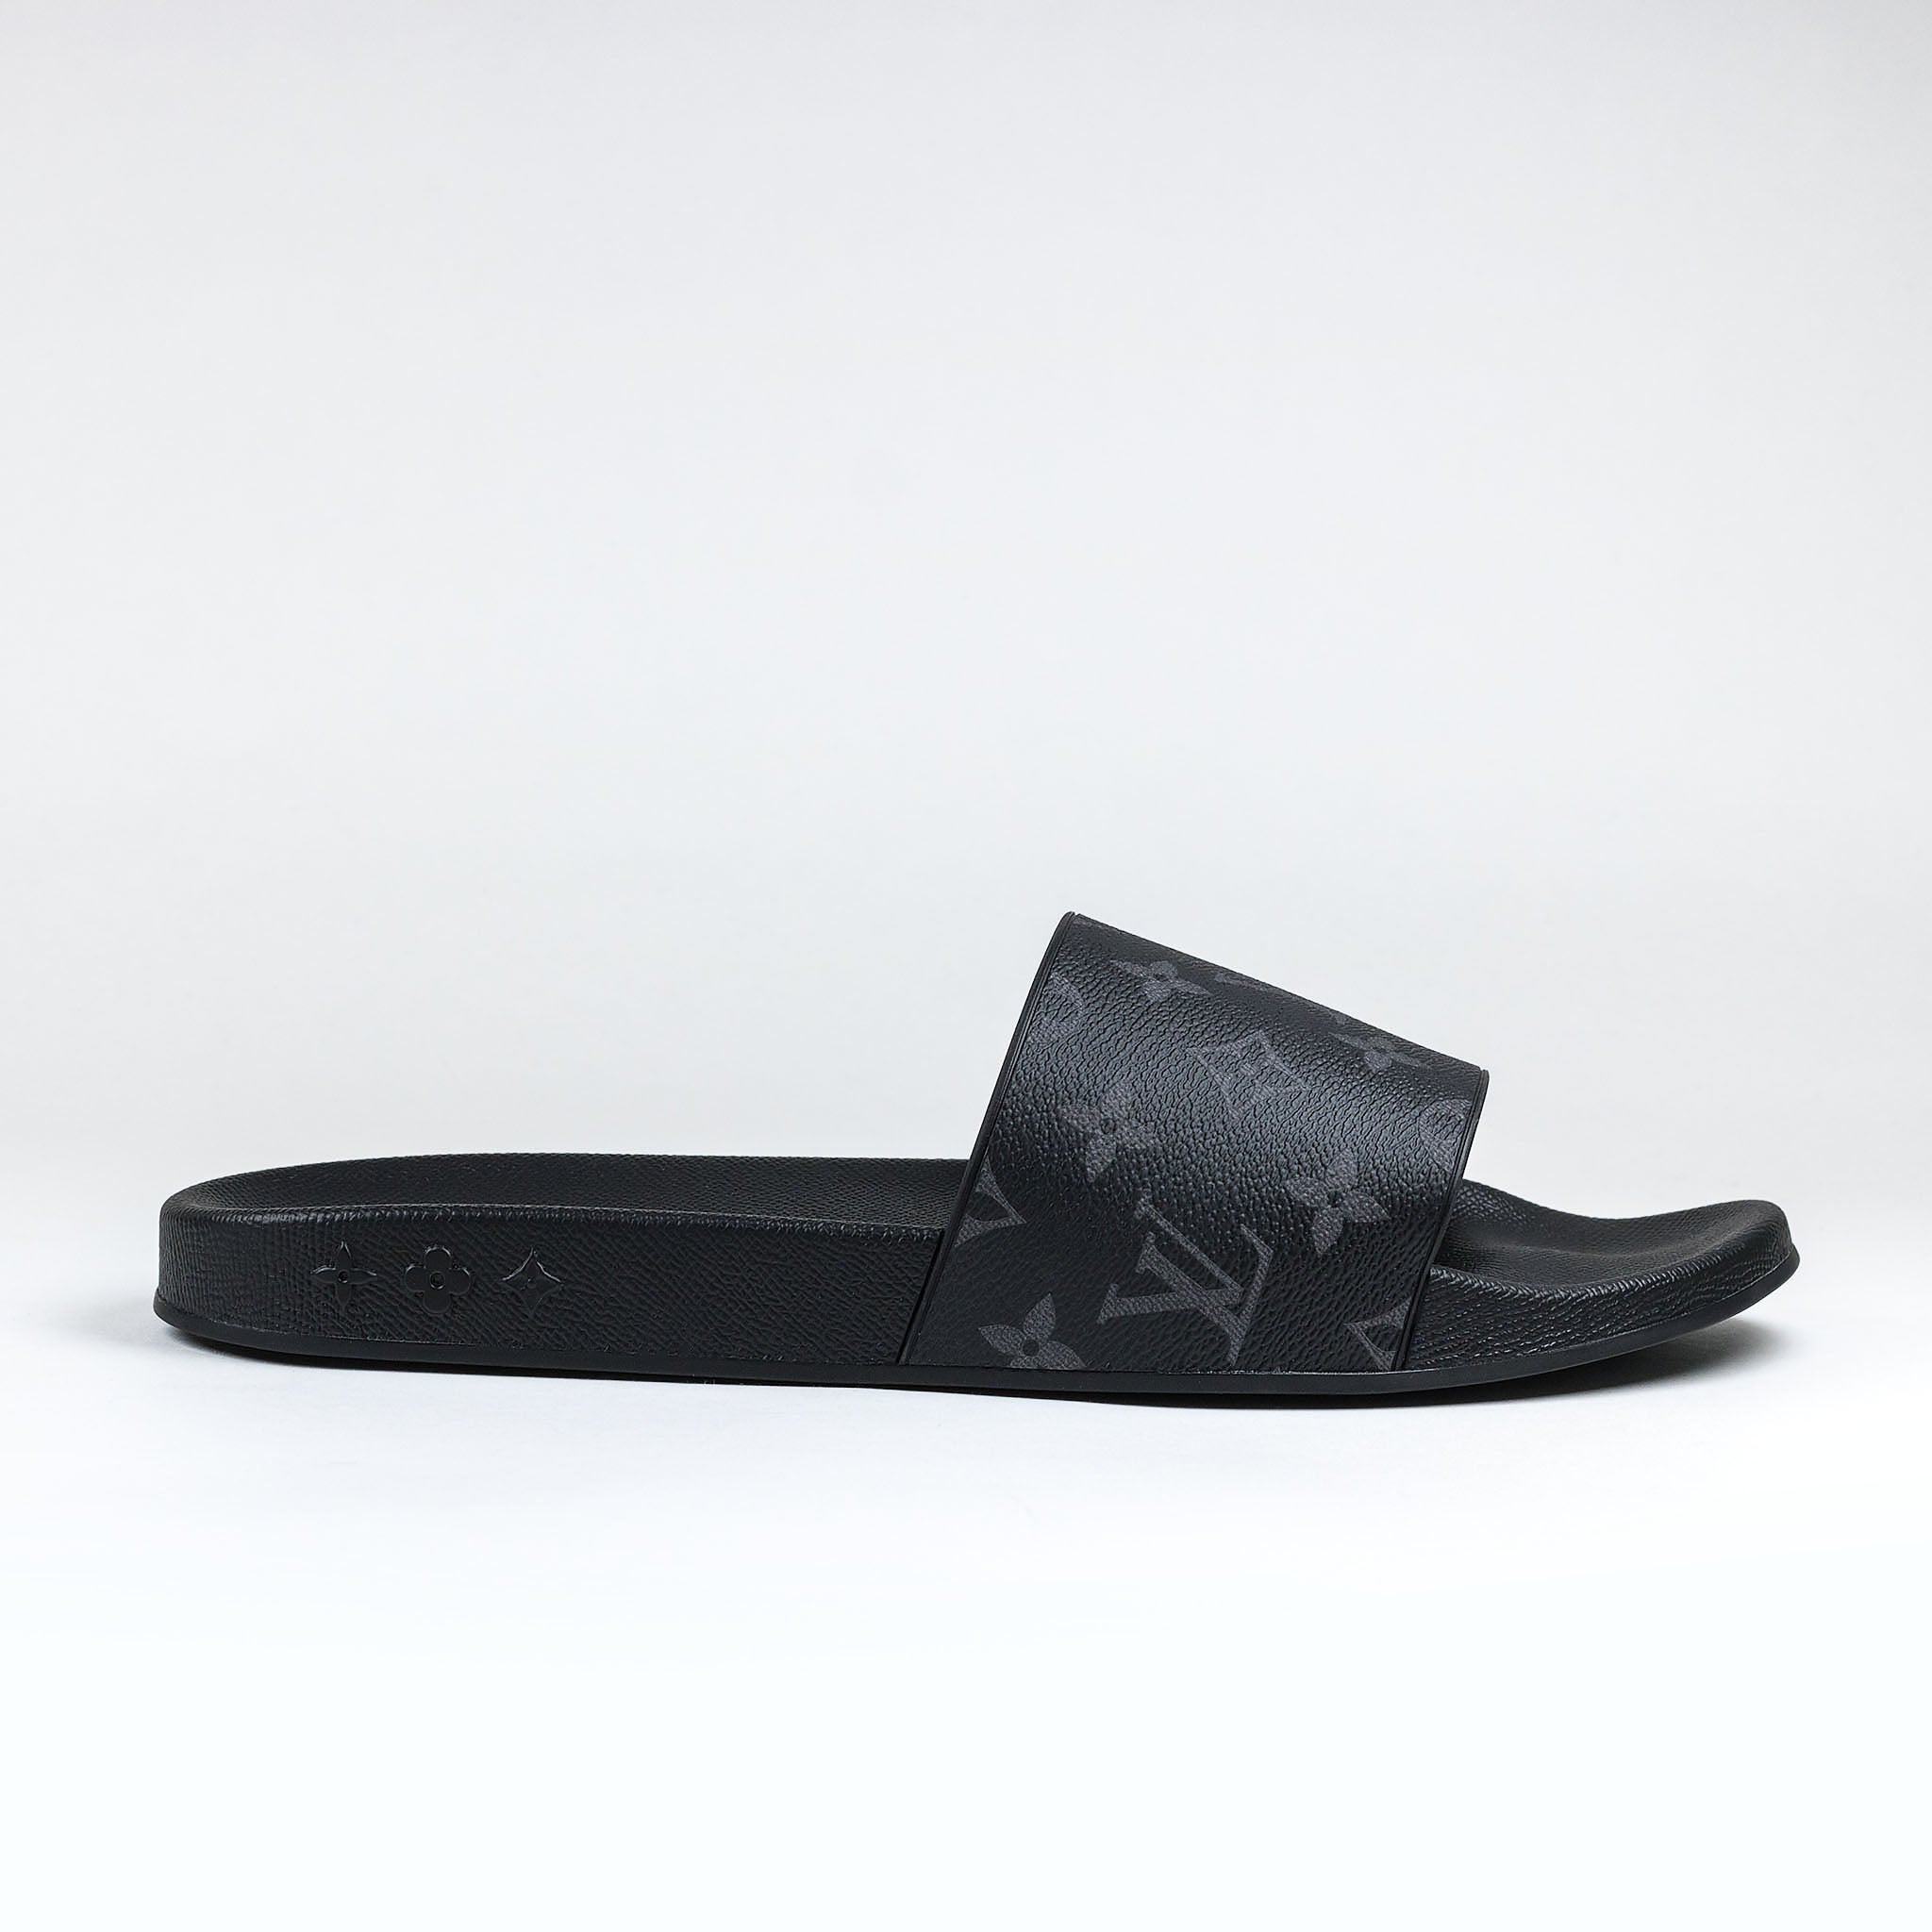 5a0542e9d00f Louis Vuitton Eclipse Monogram Waterfront Mule Slides – Crepslocker